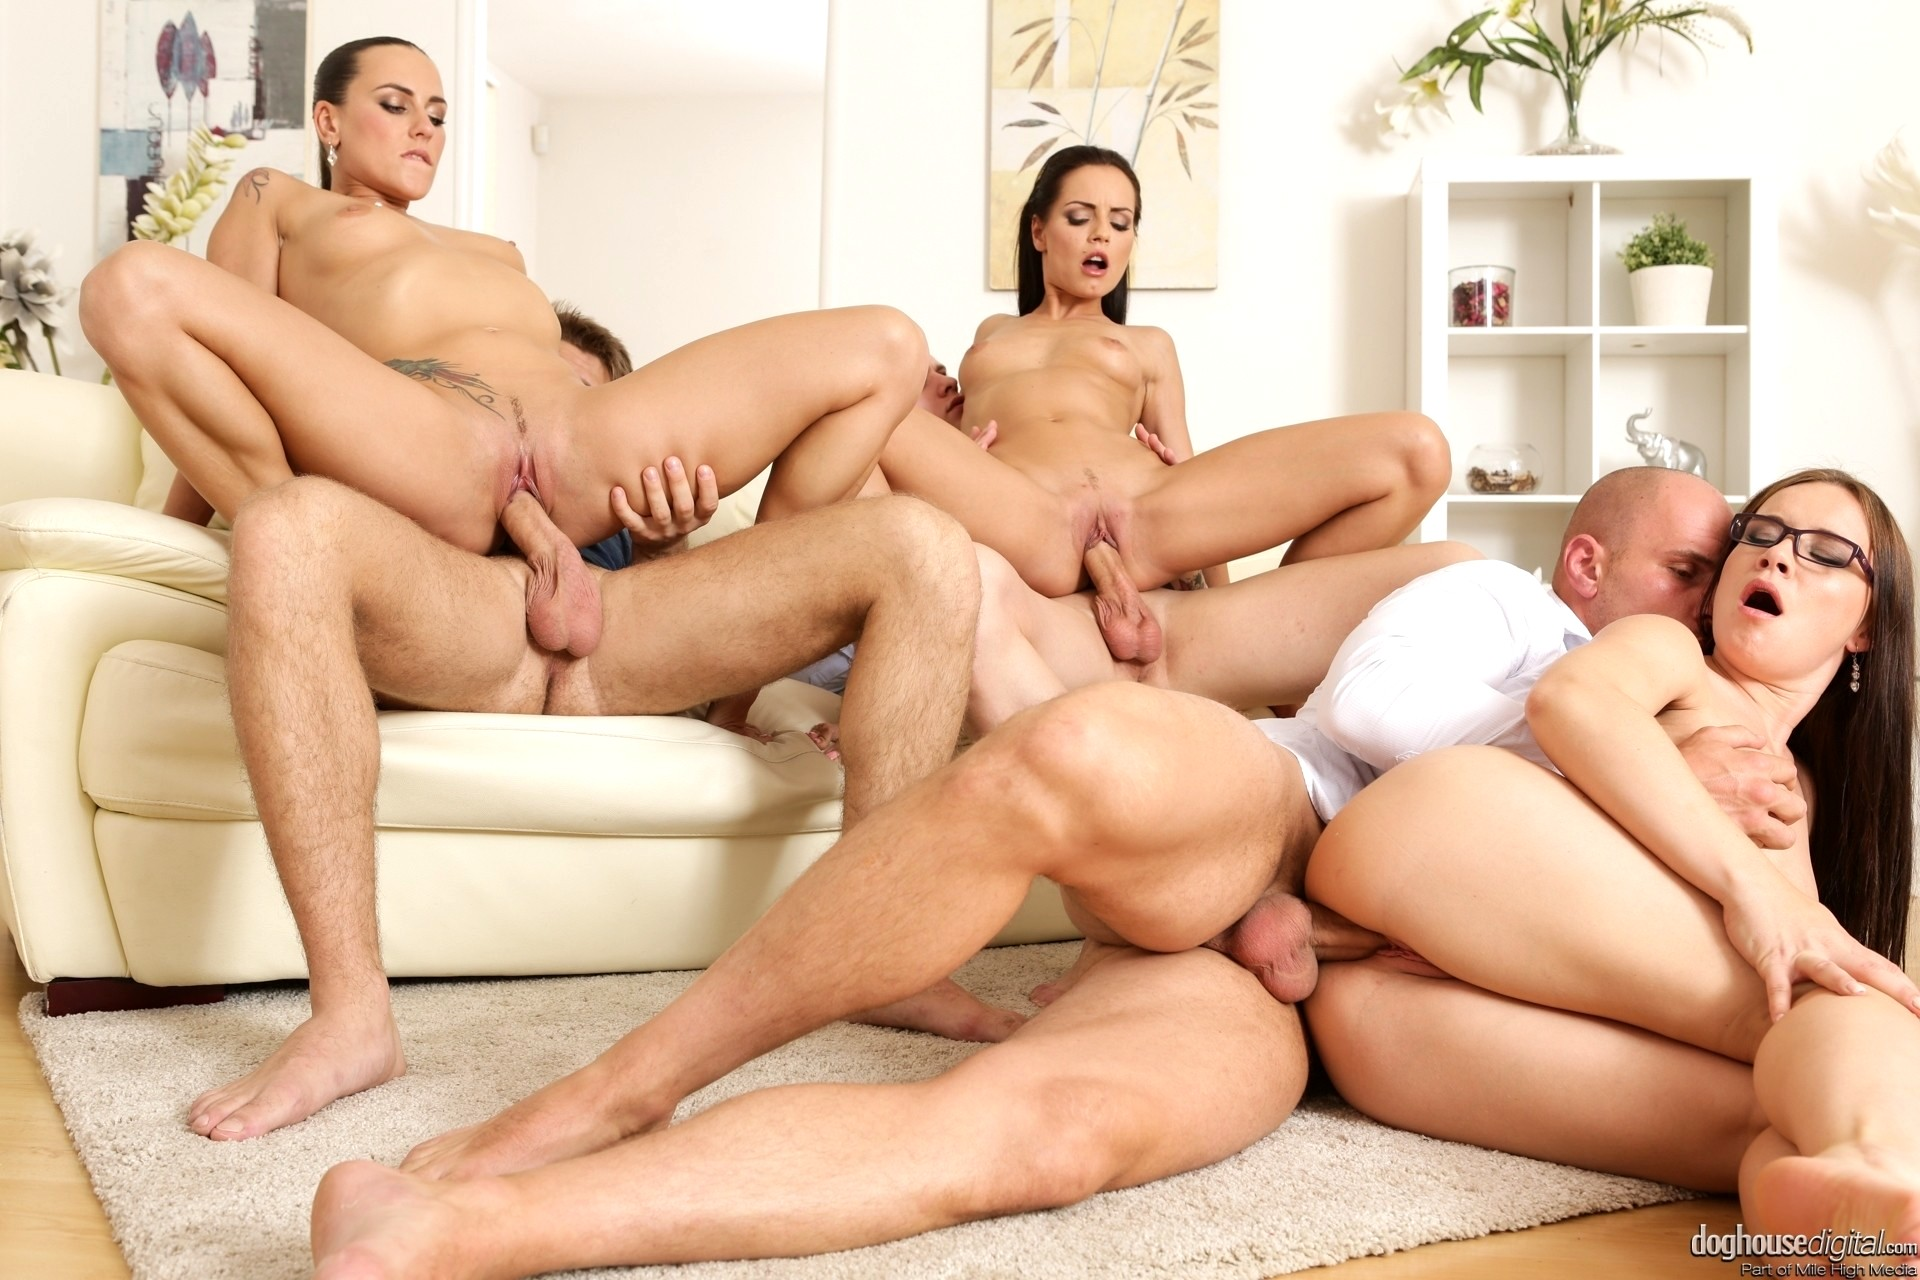 Group sex galleries vids